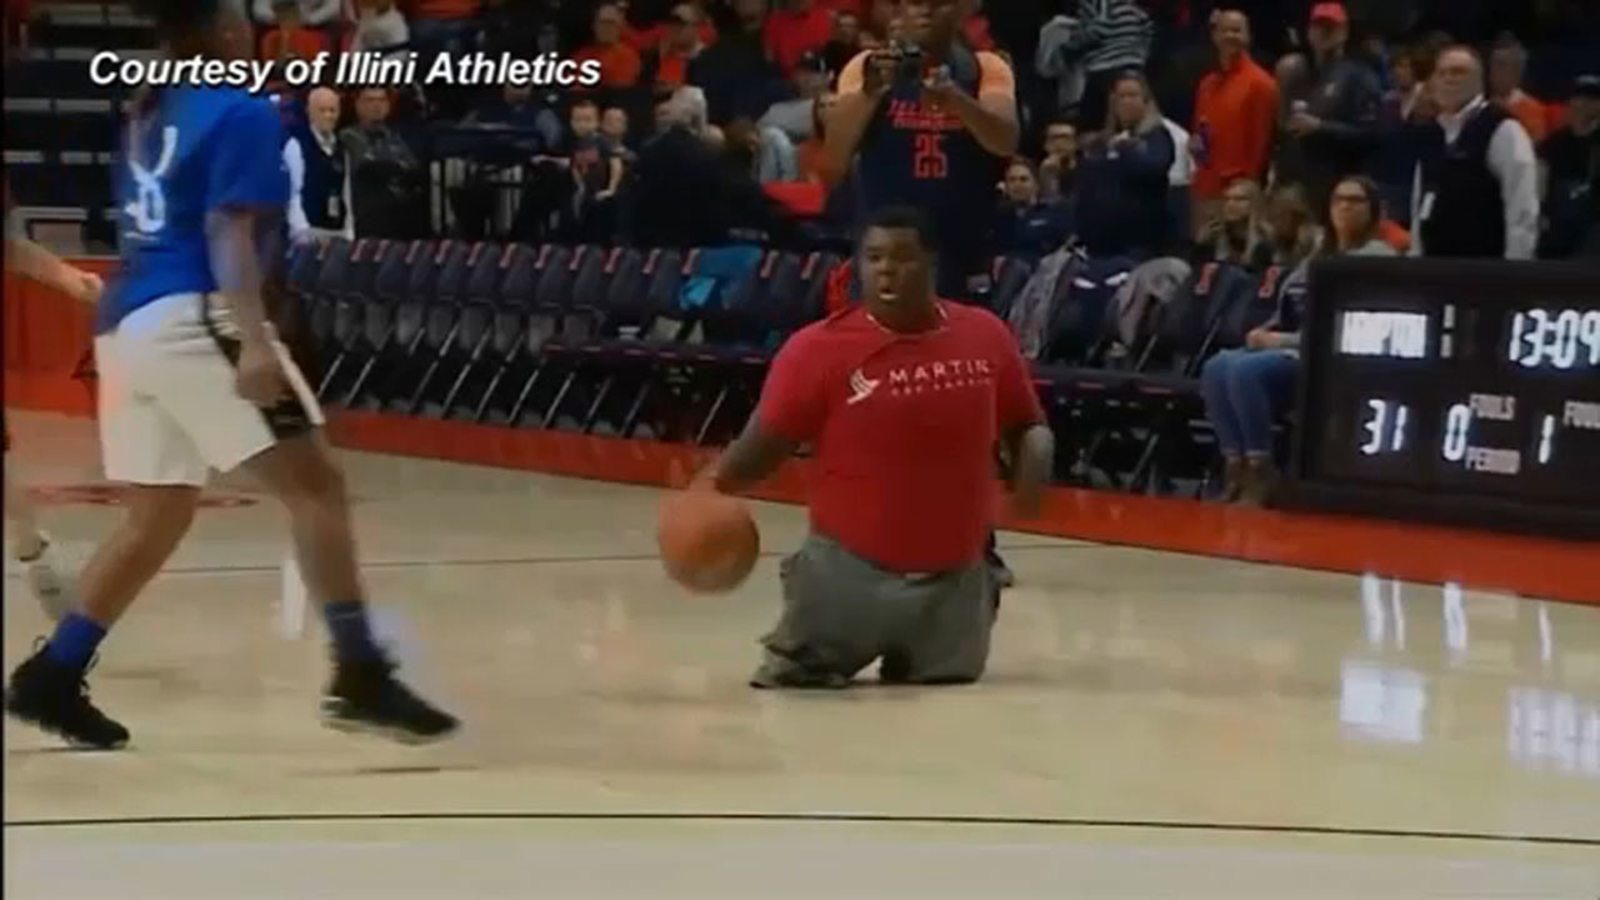 7th grader with no legs impresses with basketball skills in televised game